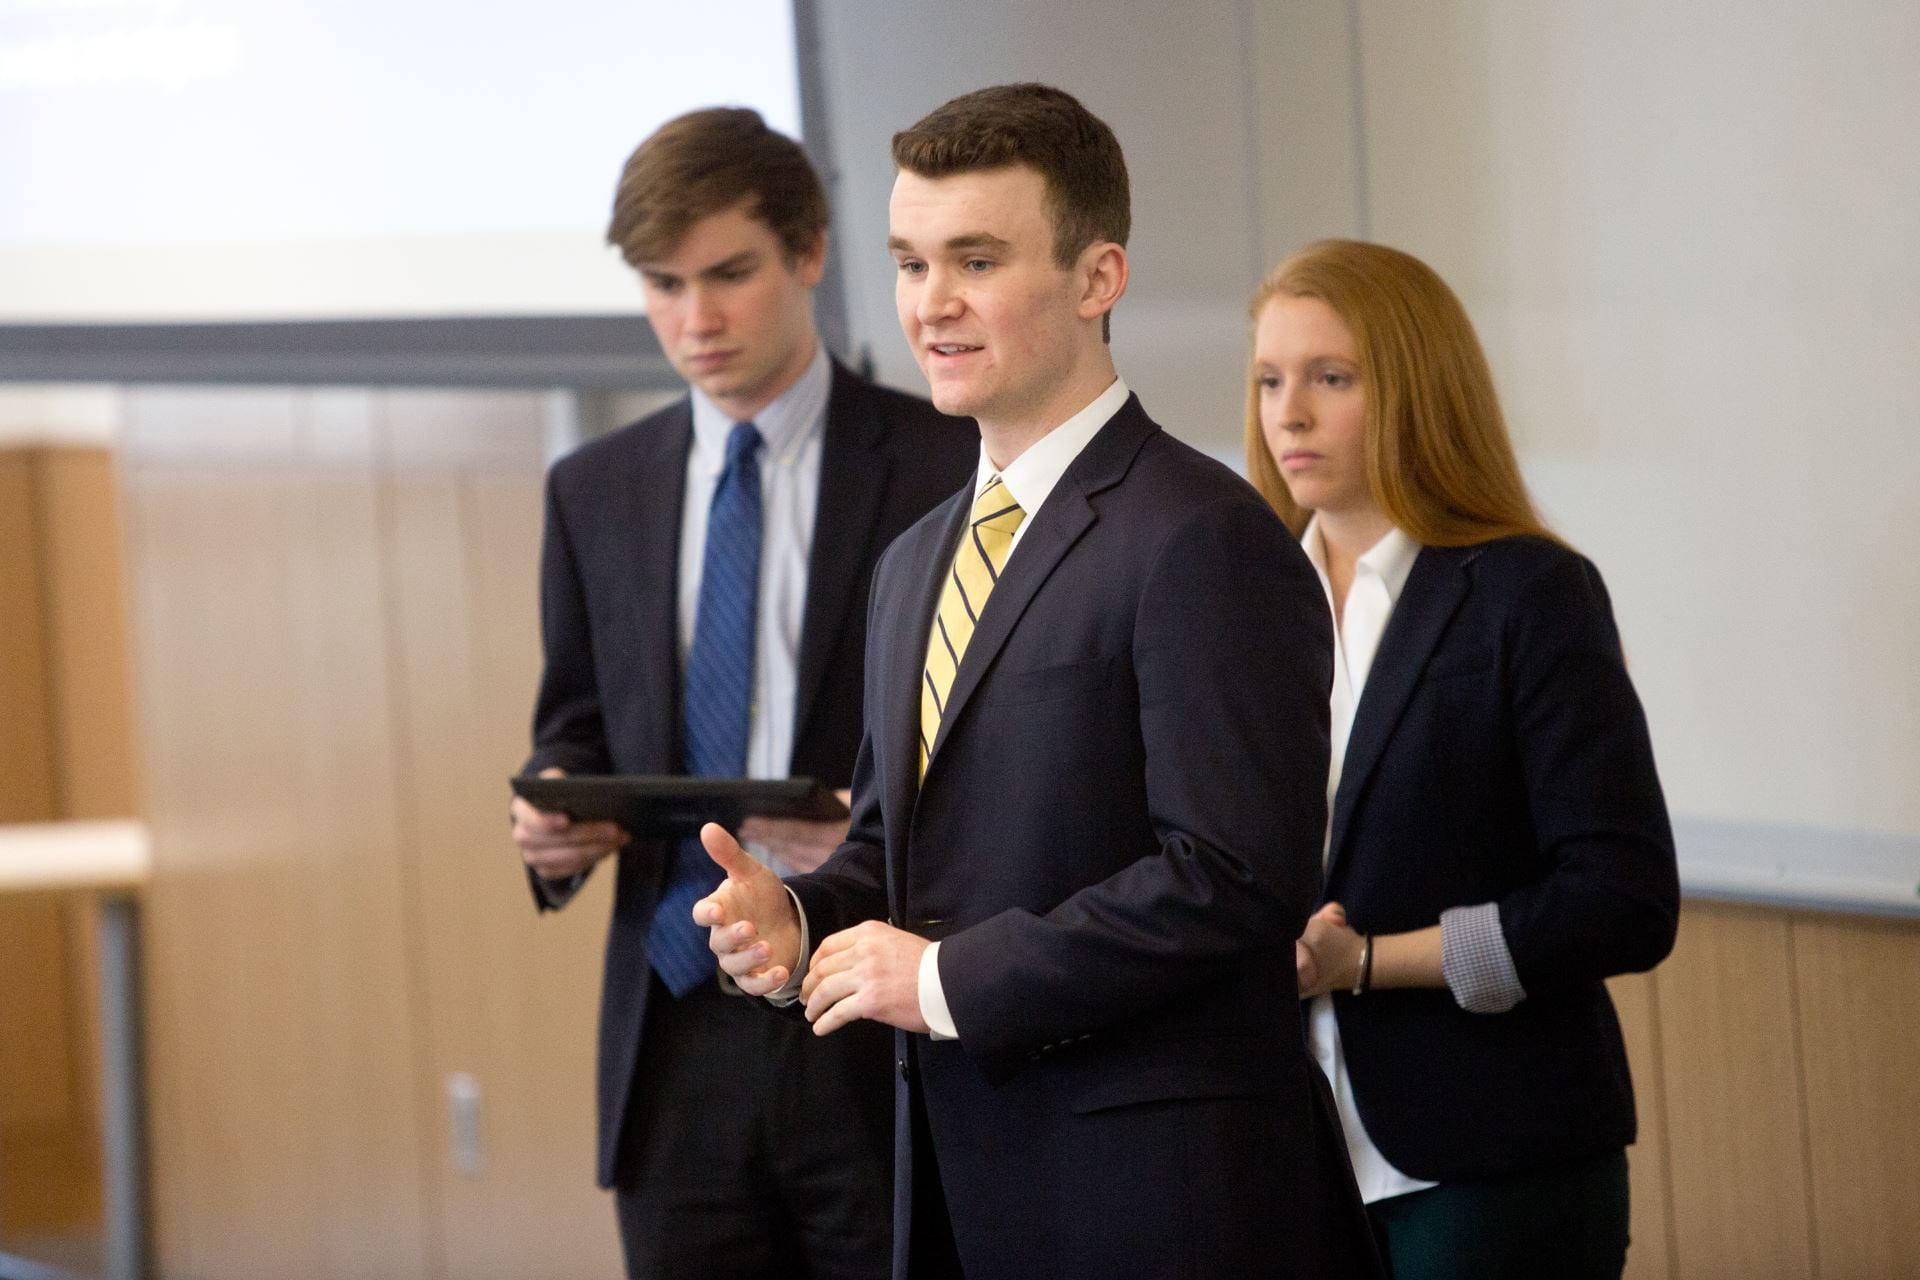 A group of three students presenting in the front of a classroom.